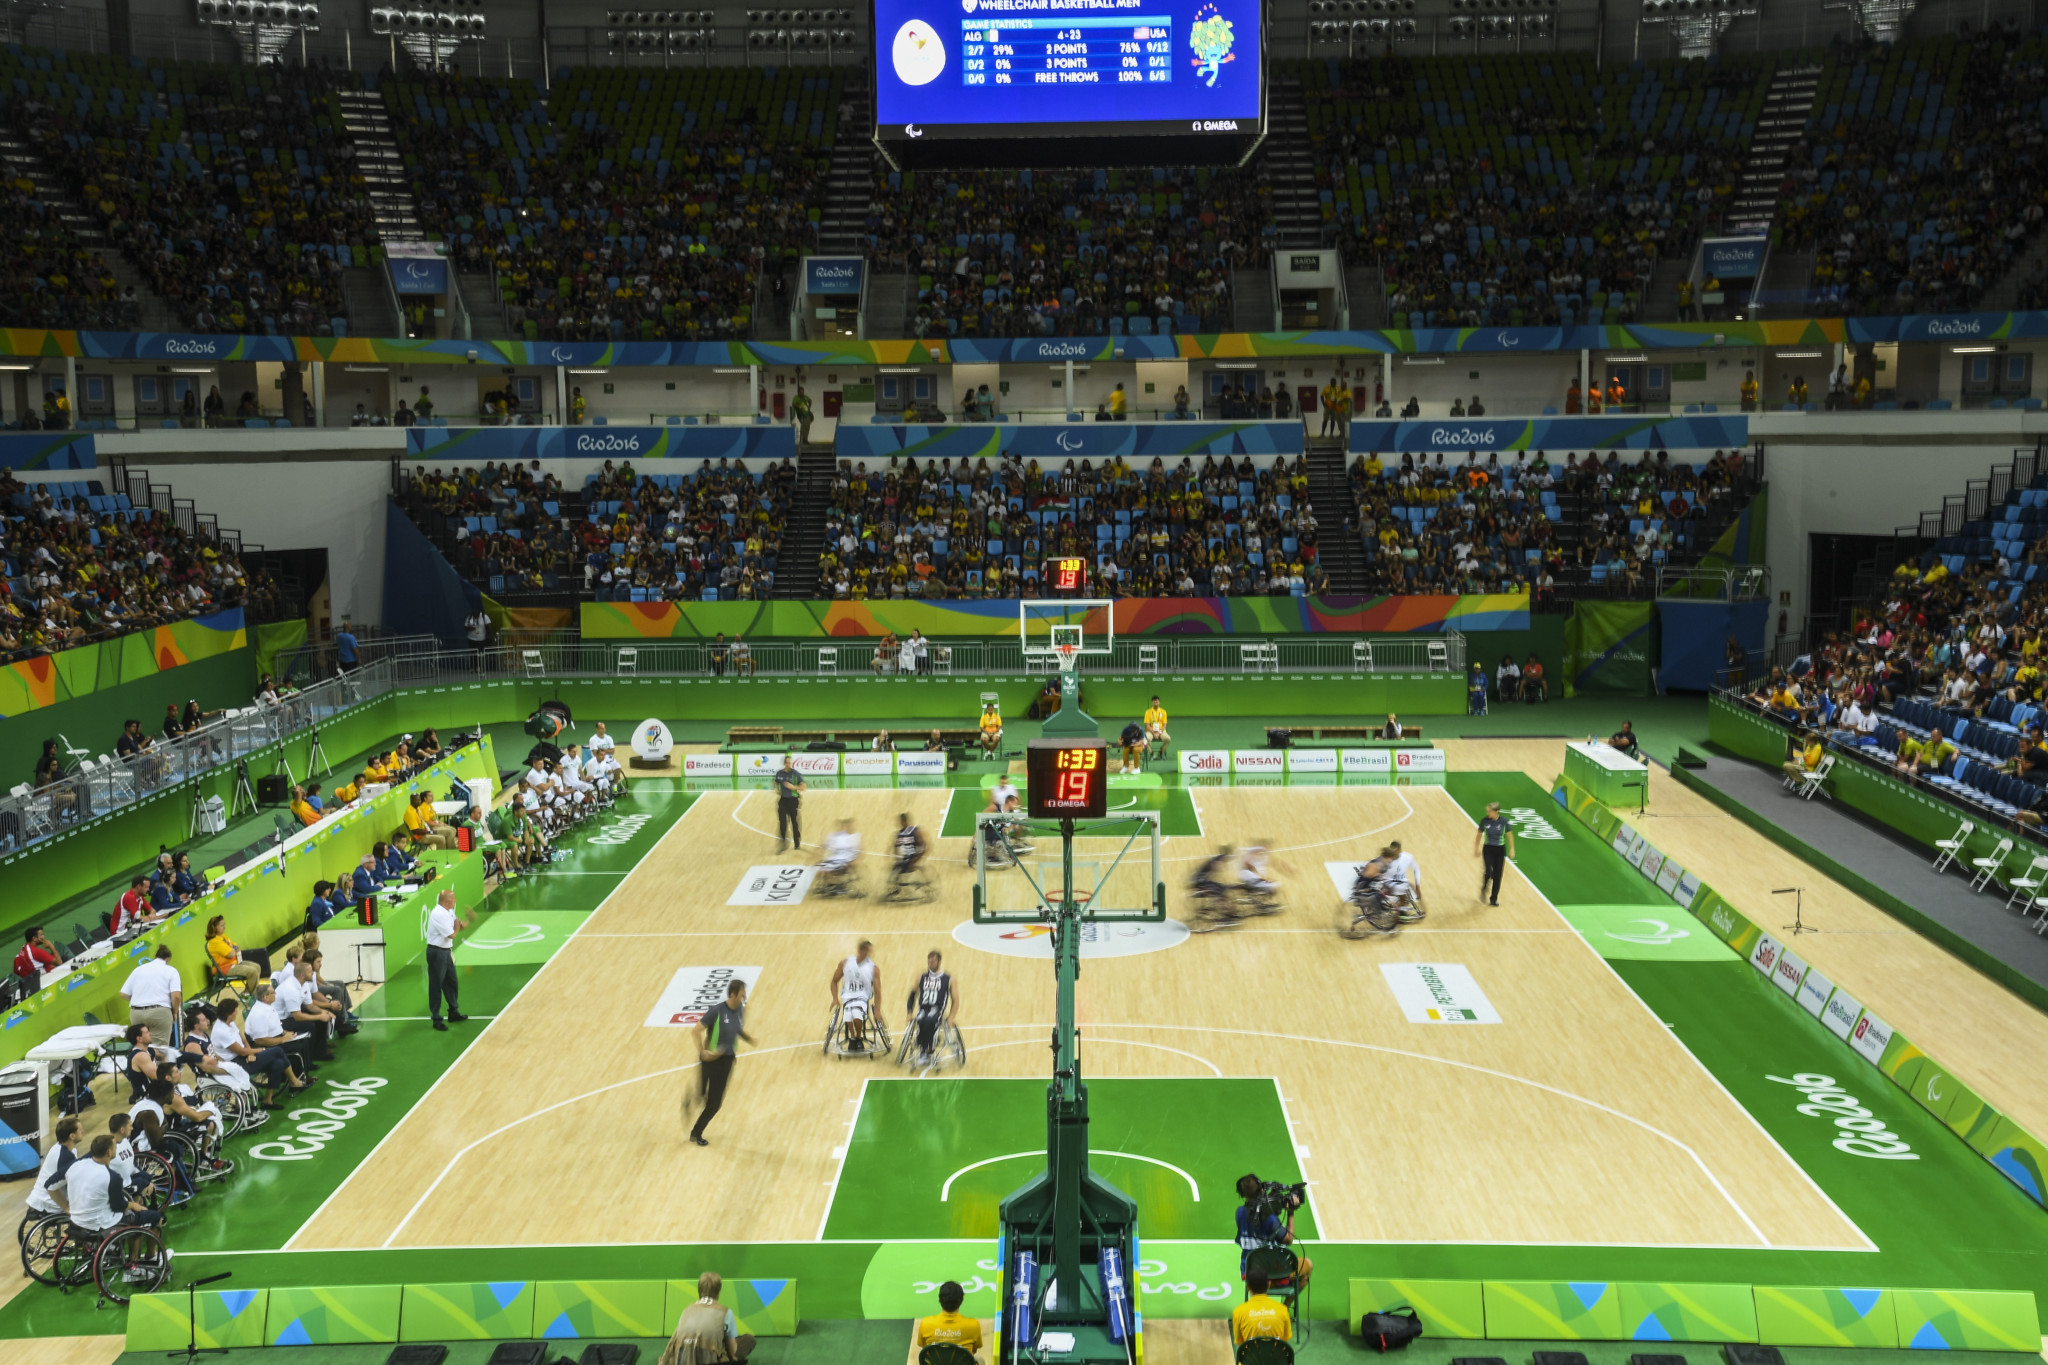 IWBF signs content agreement with Olympic Channel